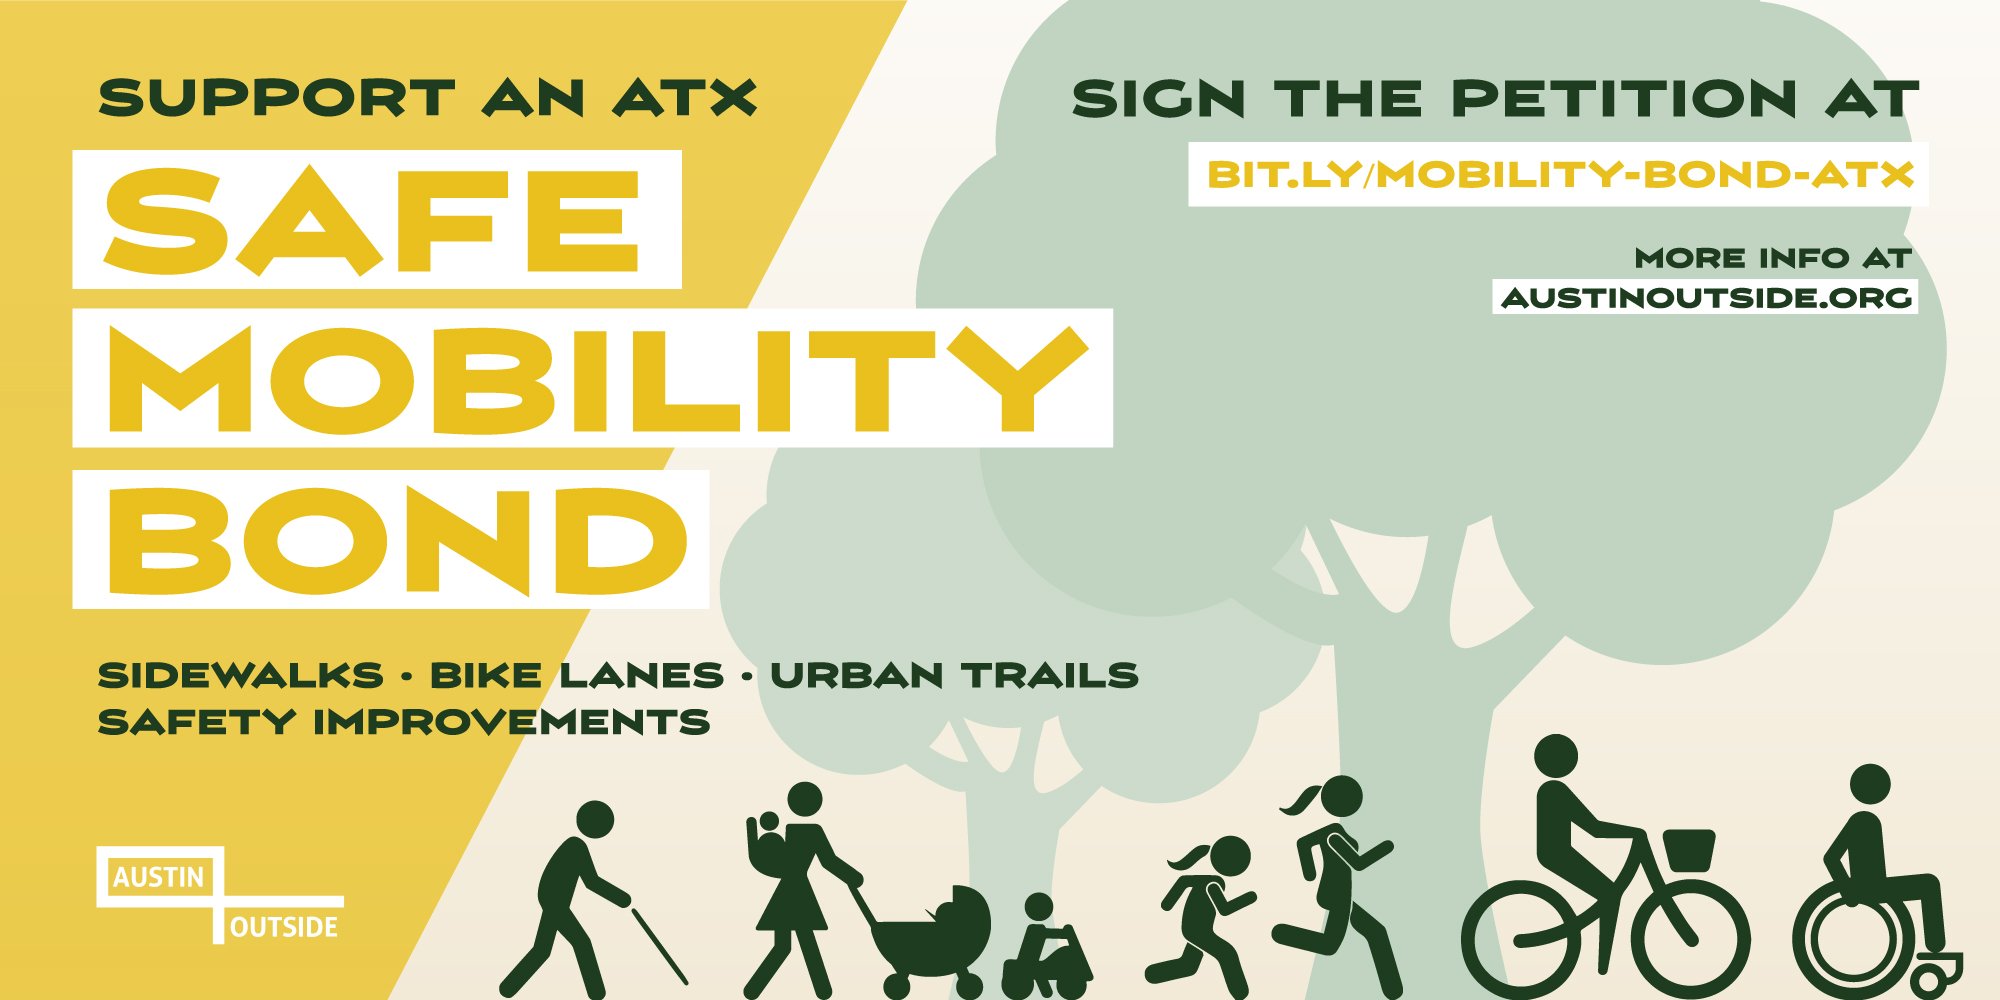 Mobility-bond-banner_no-date